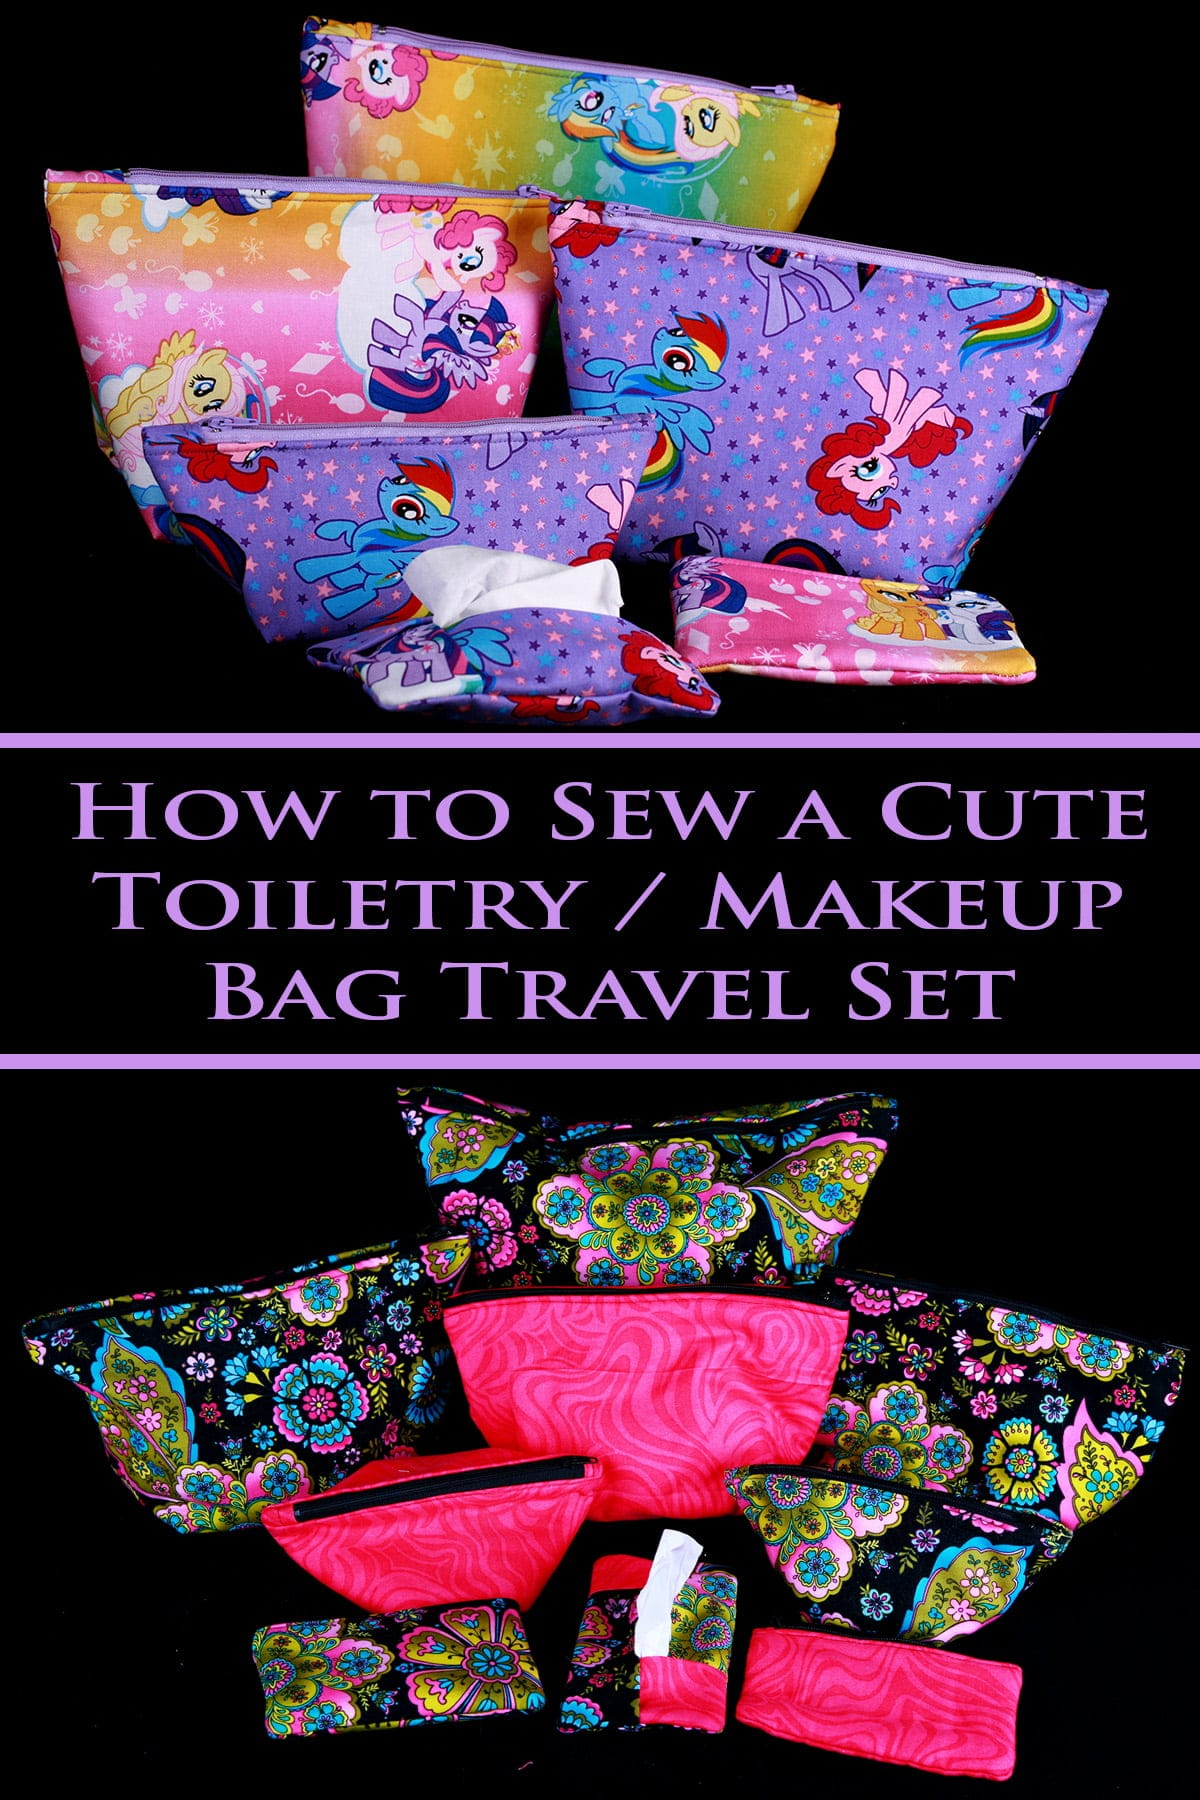 A large travel and makeup bag set - 4 bags of various sizes, a coin purse, and a tissue holder - are shown in front of a black background. The fabrics are a purple and rainbow, printed with a My Little Pony design.